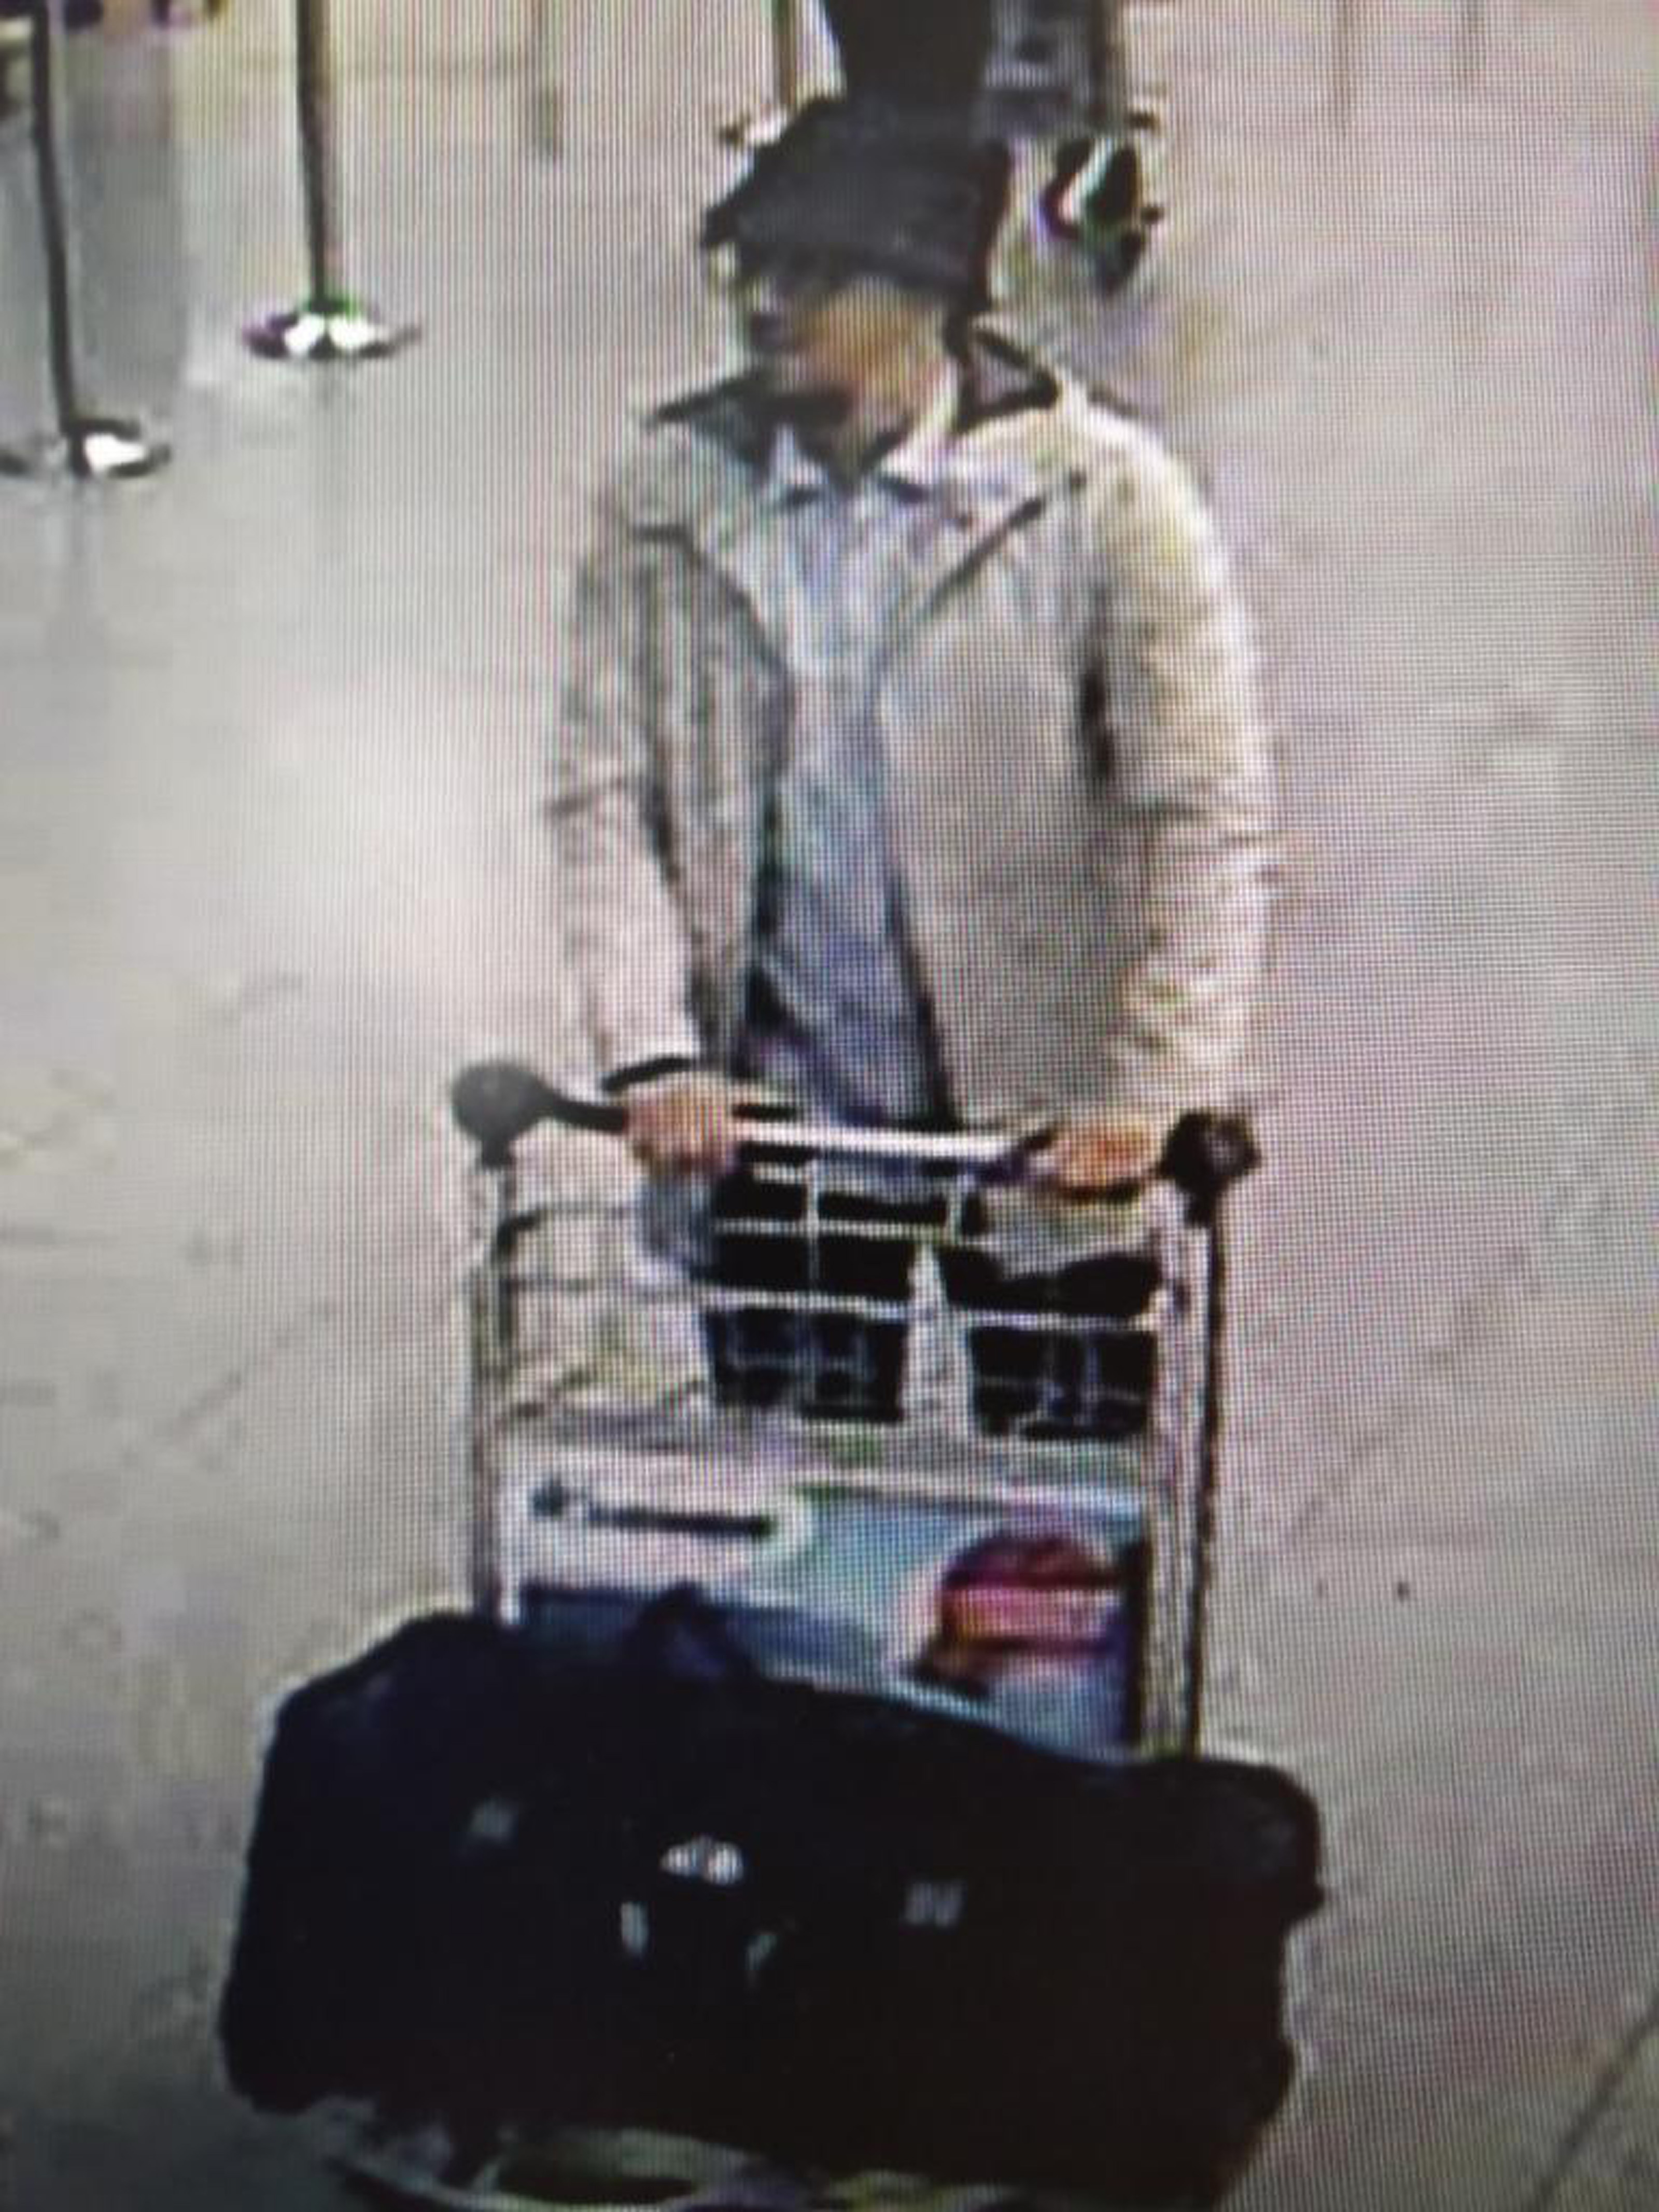 An image of a man who is suspected of taking part in the attacks at Belgium's Zaventem Airport and is being sought by police. Photo: Belgian Federal Police via AP